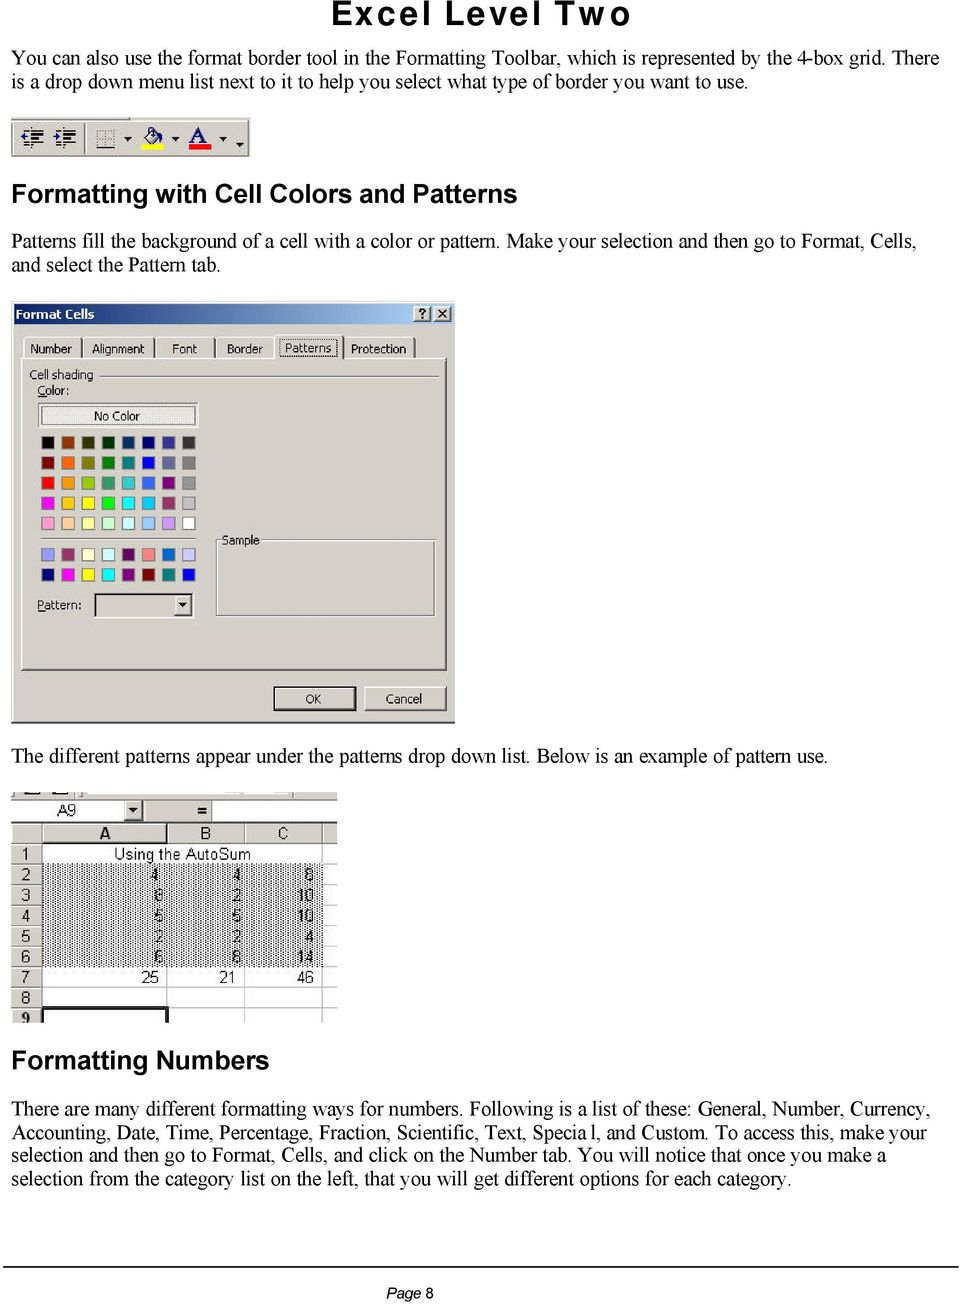 Formatting with Cell Colors and Patterns Patterns fill the background of a cell with a color or pattern. Make your selection and then go to Format, Cells, and select the Pattern tab.